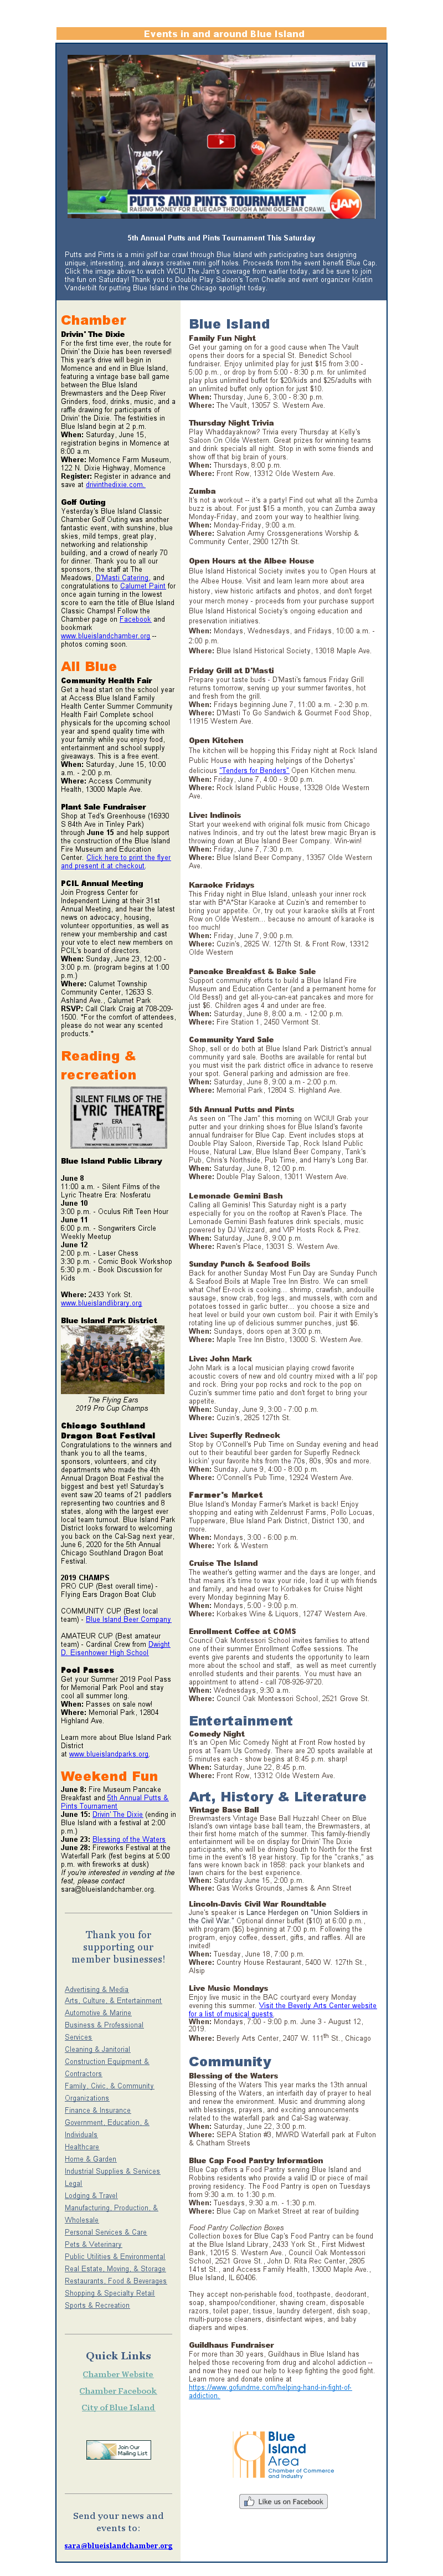 things to do June 6, 2019 Blue Island, Illinois